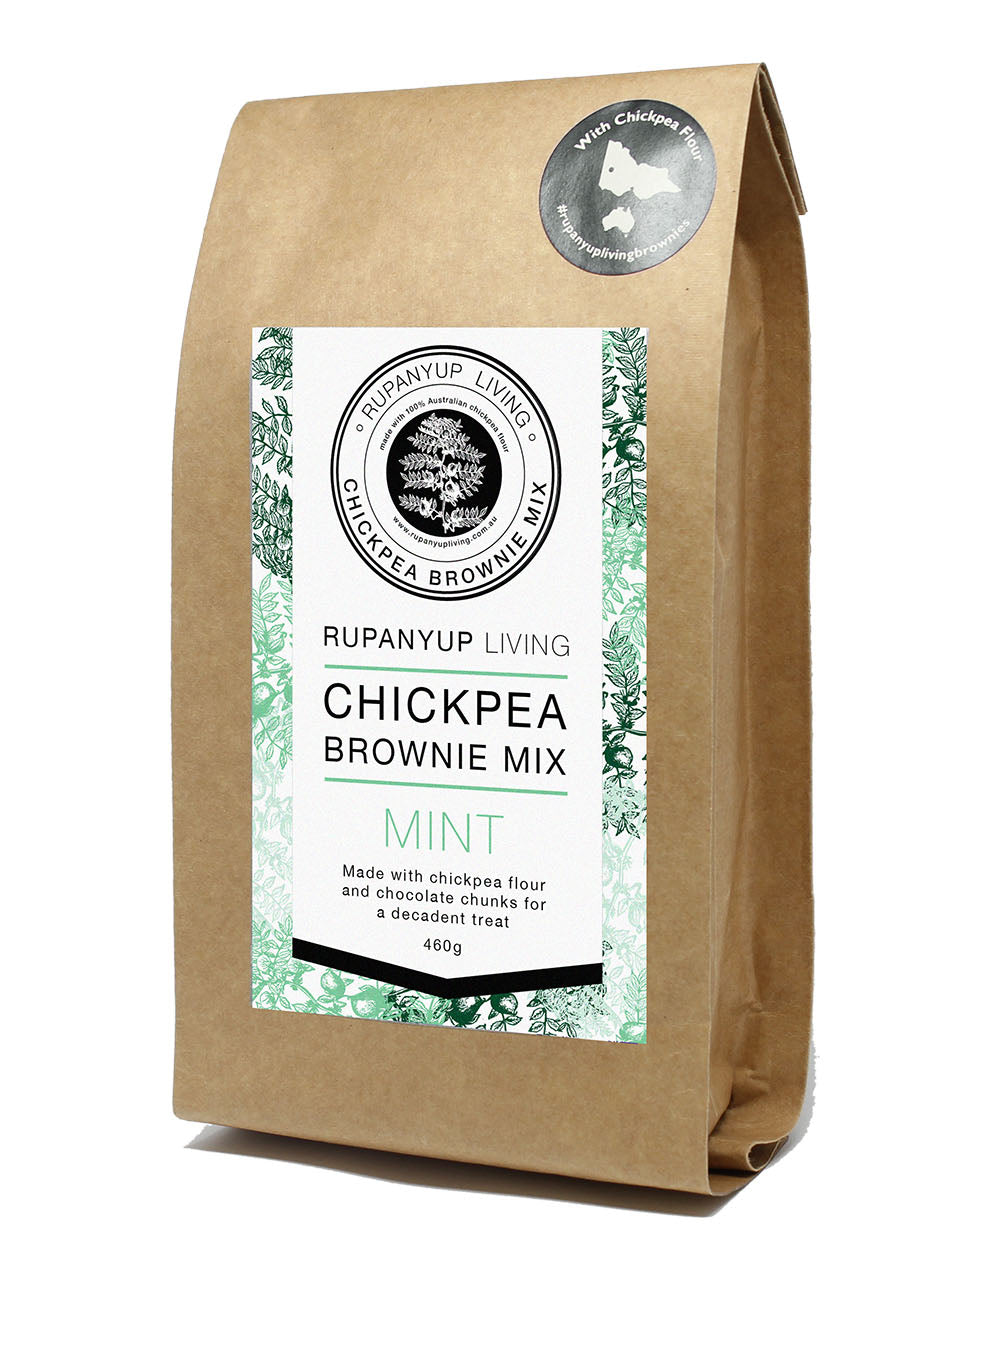 Chickpea Brownie Mix - Mint